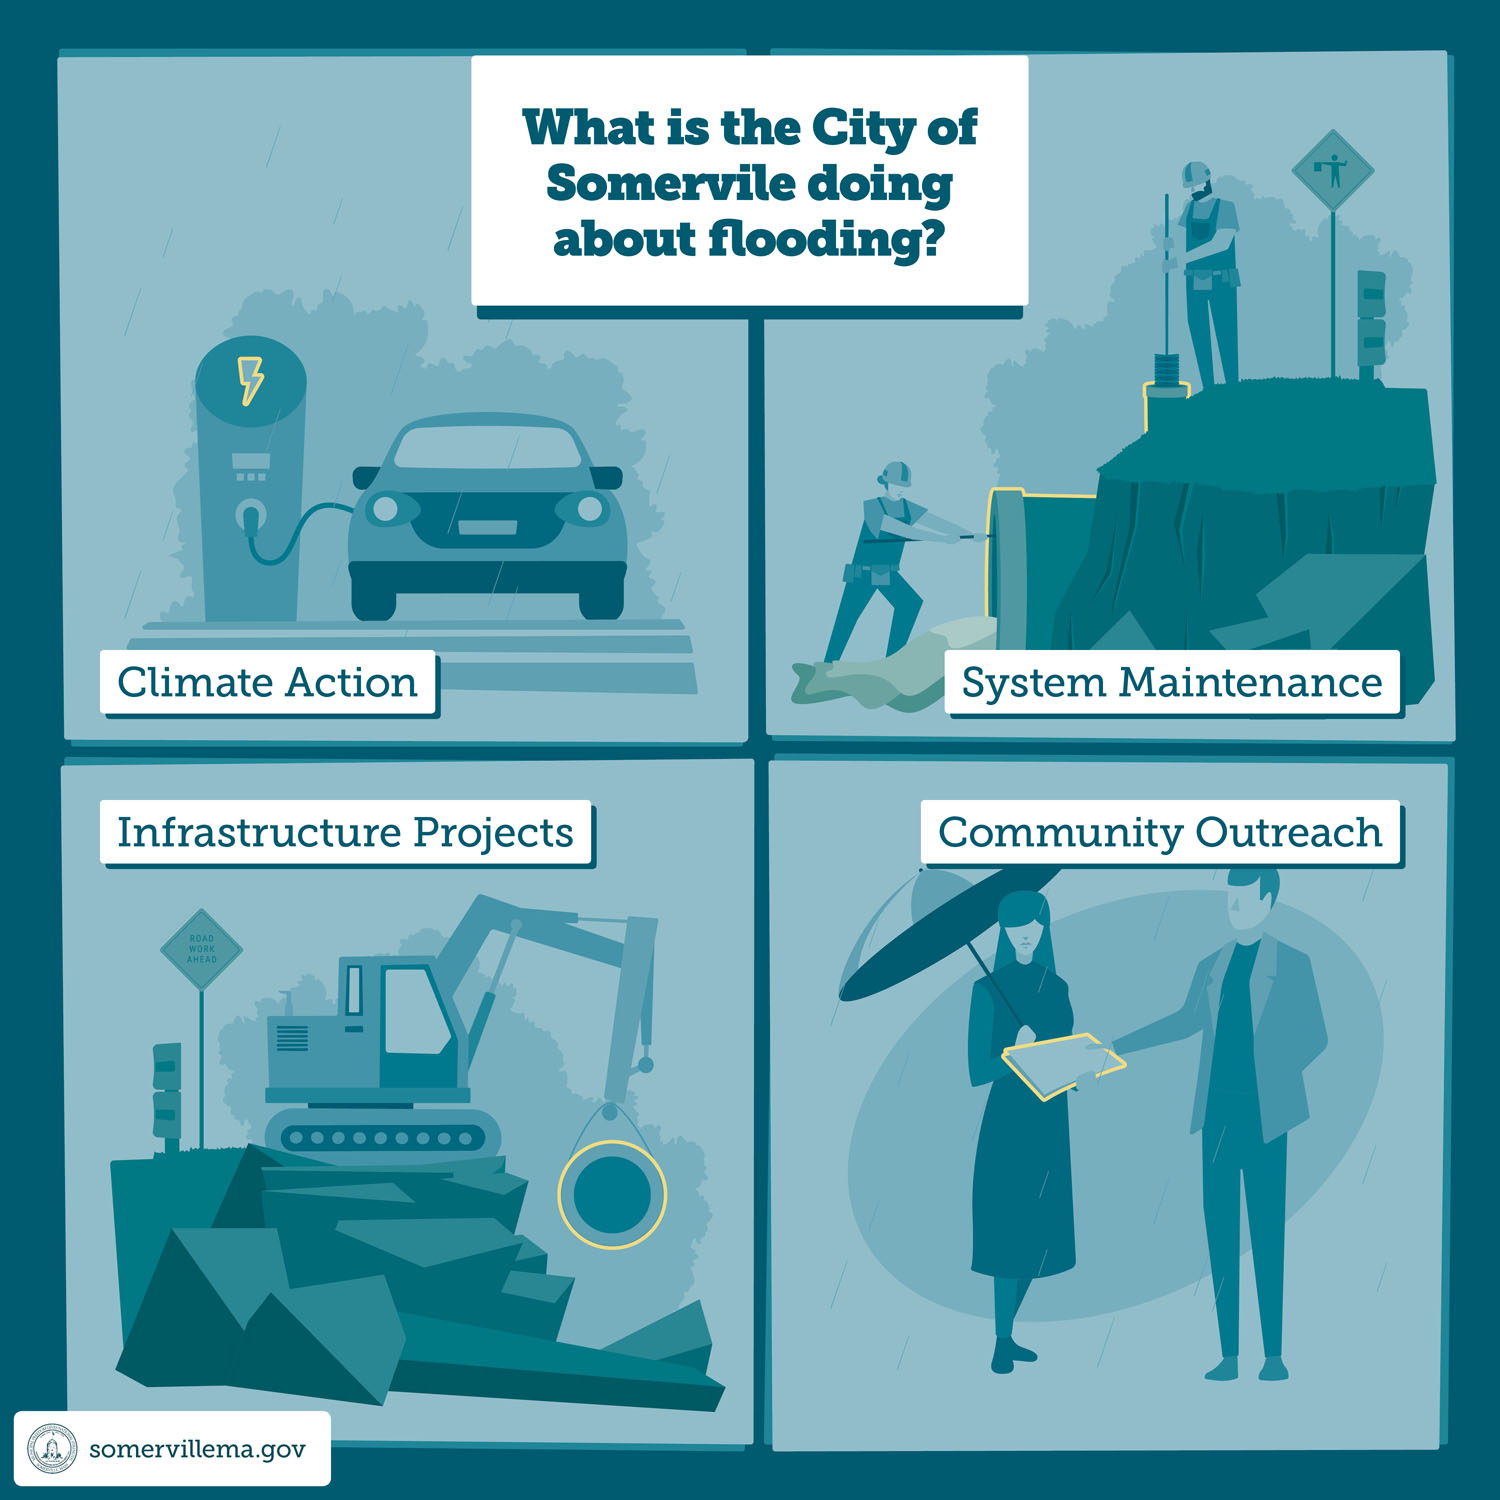 What is the City of Somerville Doing About Flooding?